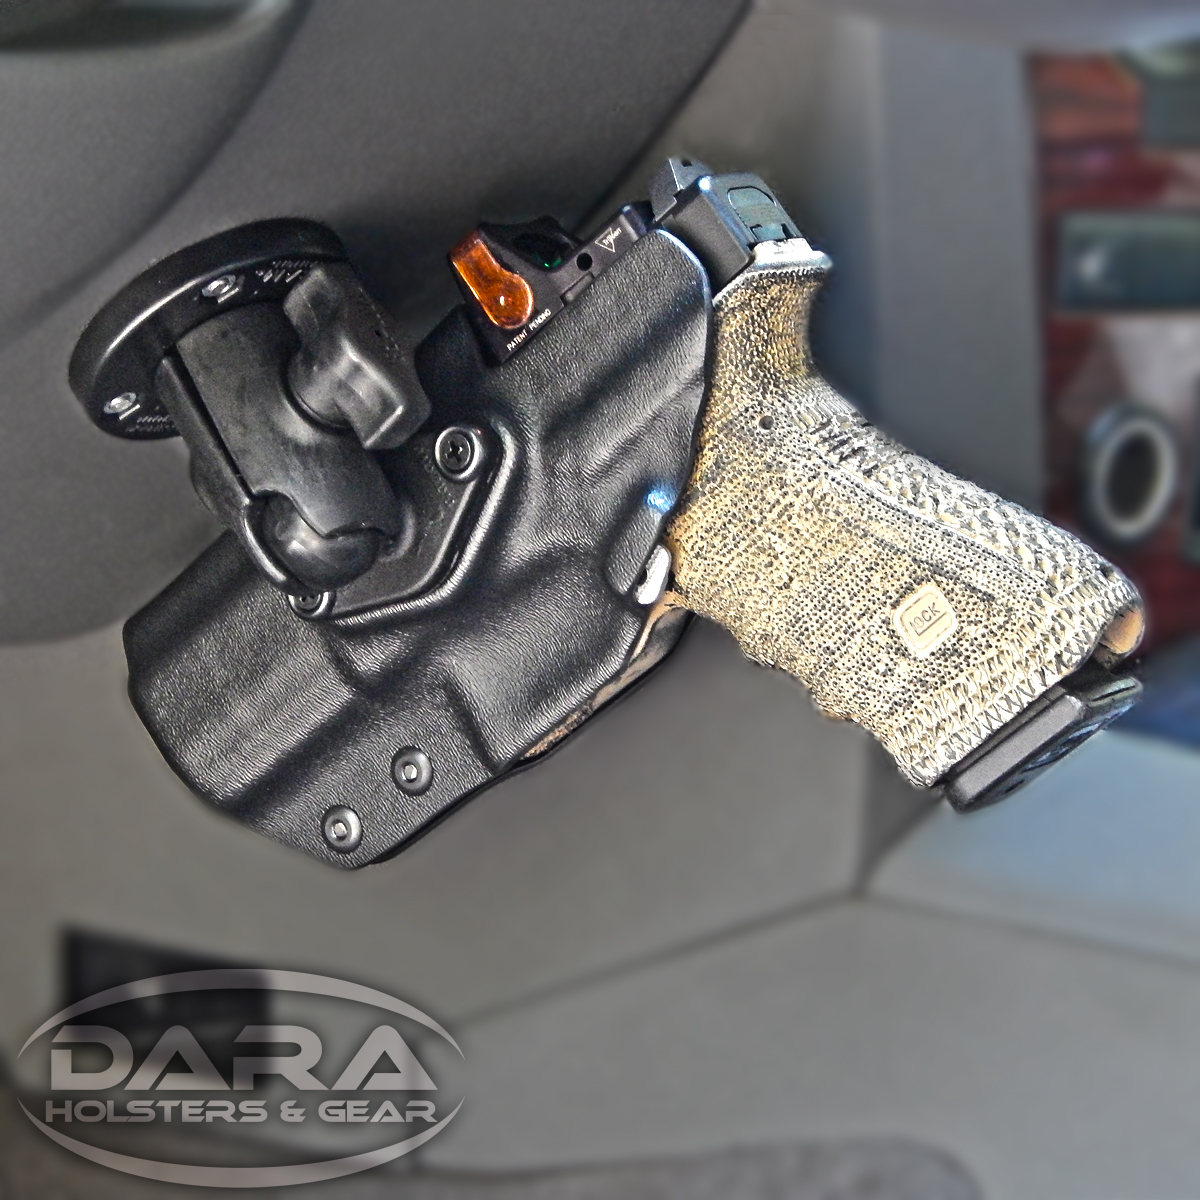 Dara Holsters Mounted Holsters For Vehicles